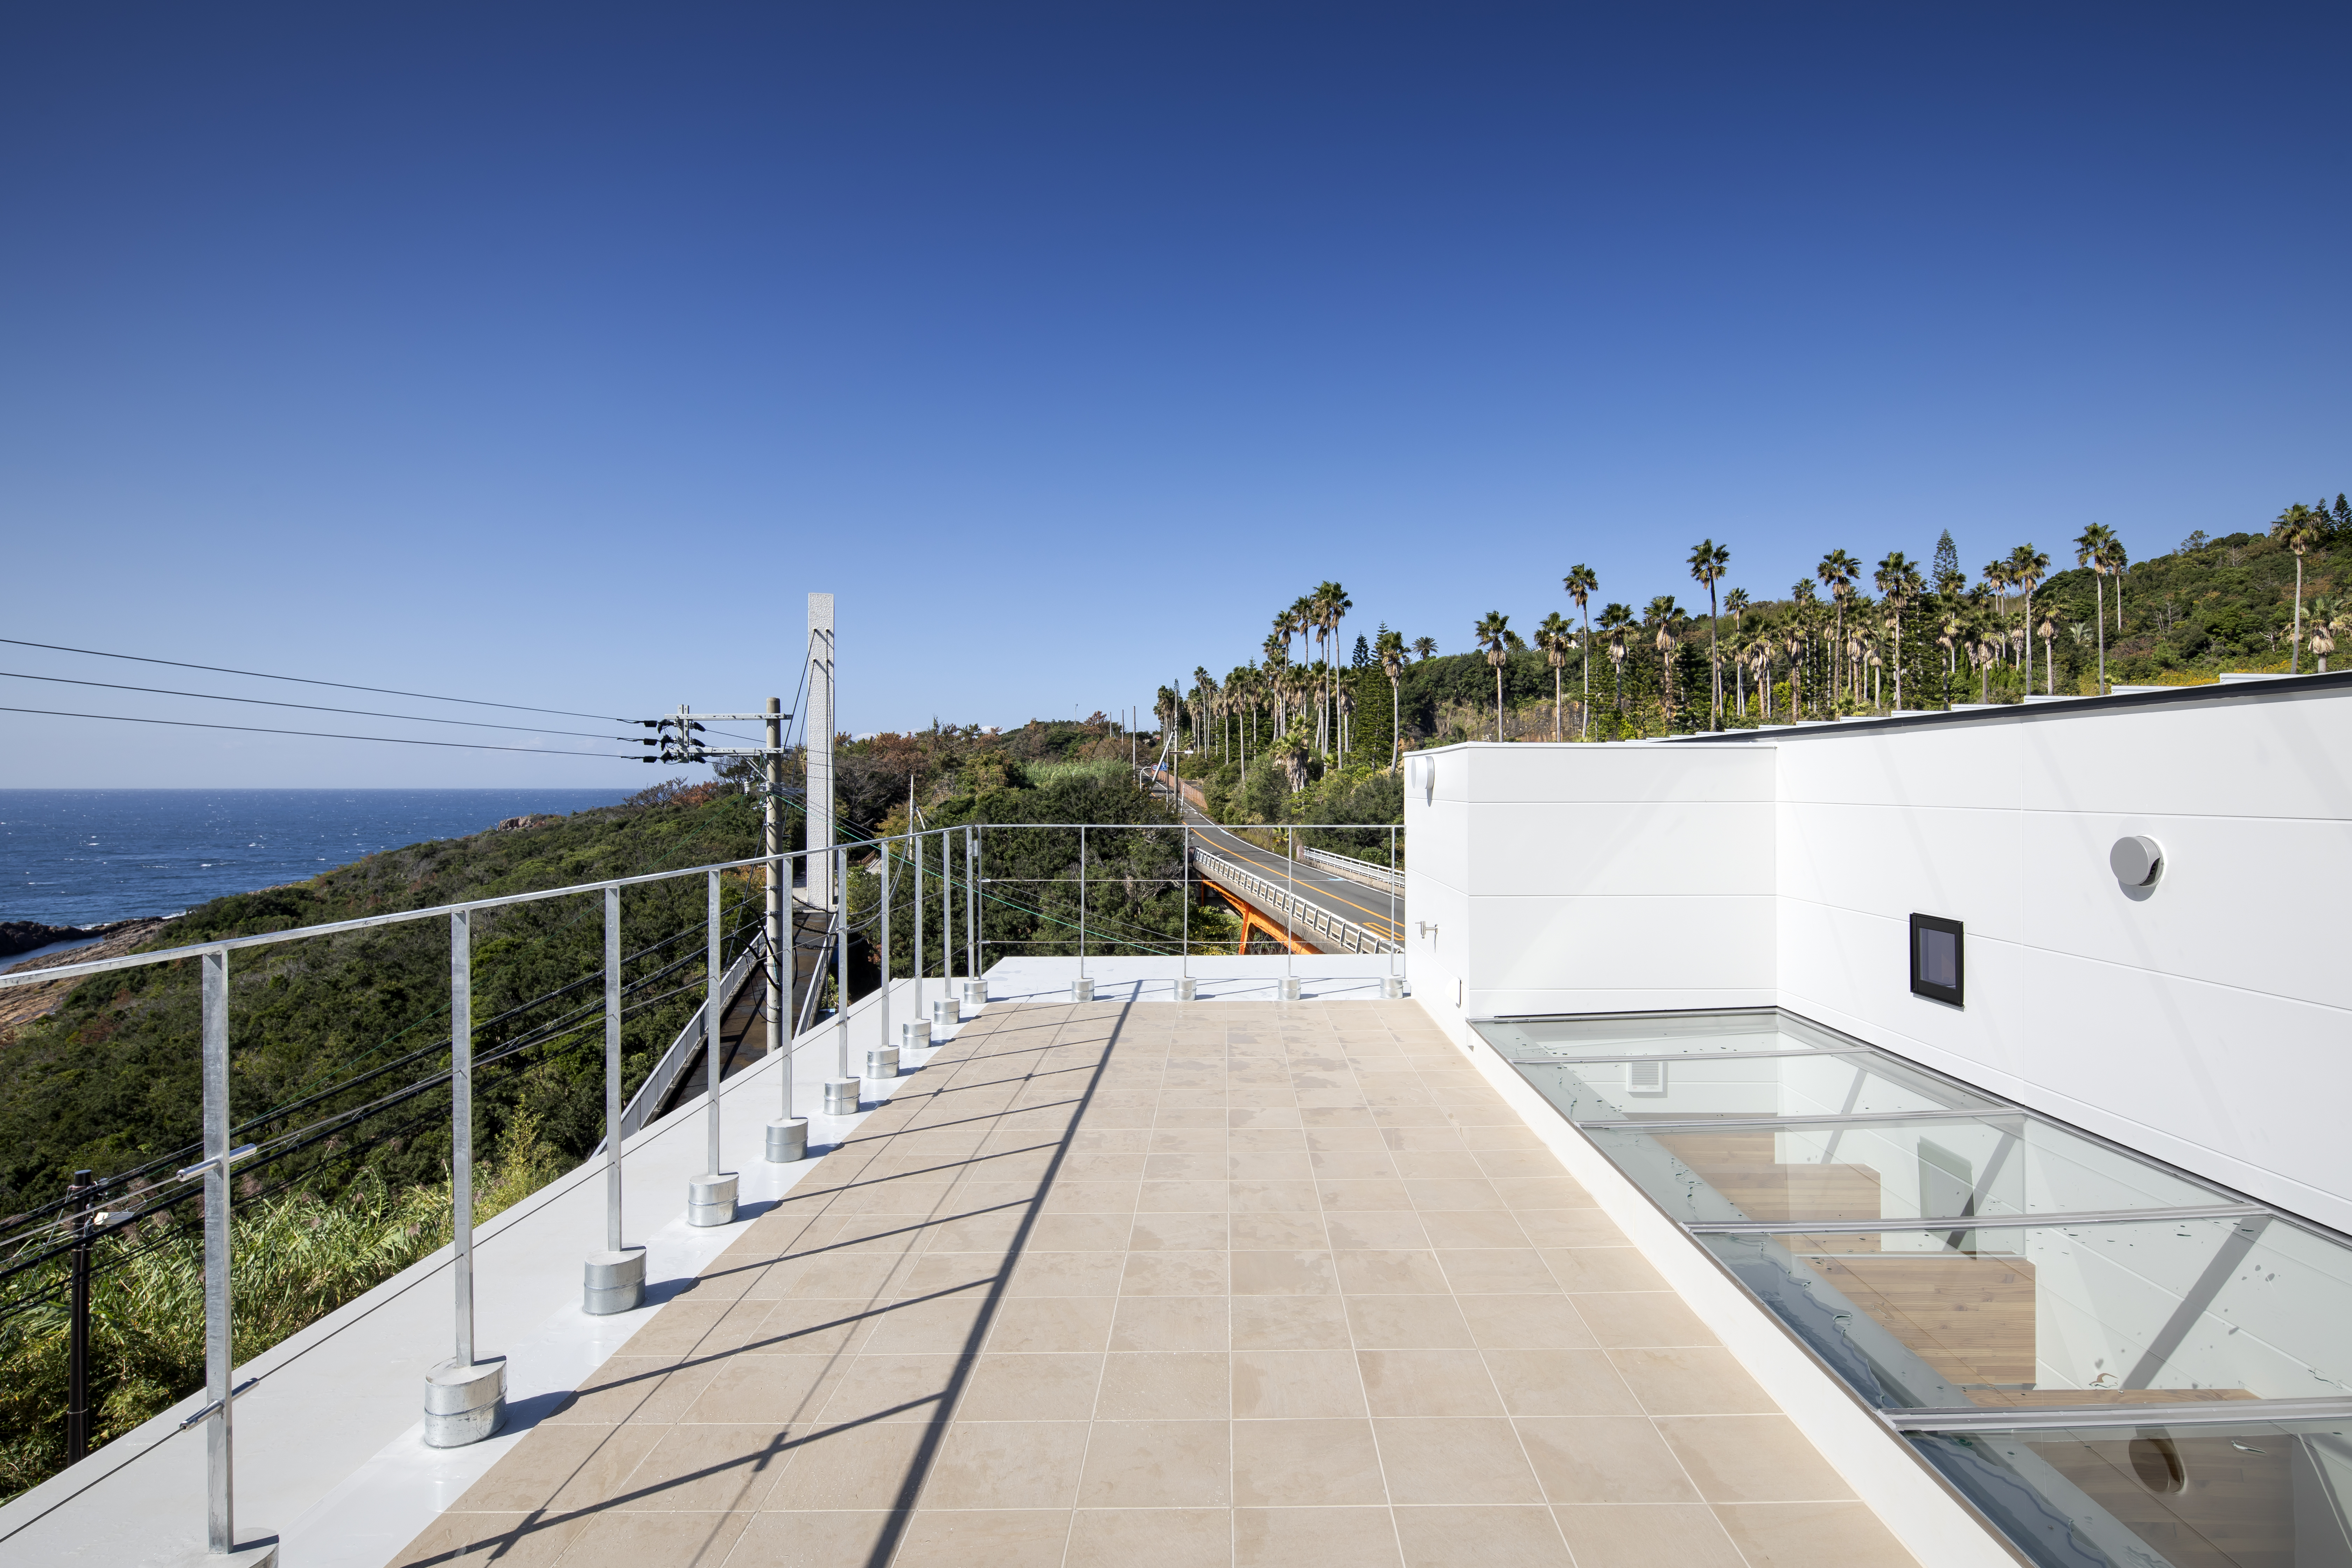 Roof Terrace with glass roof